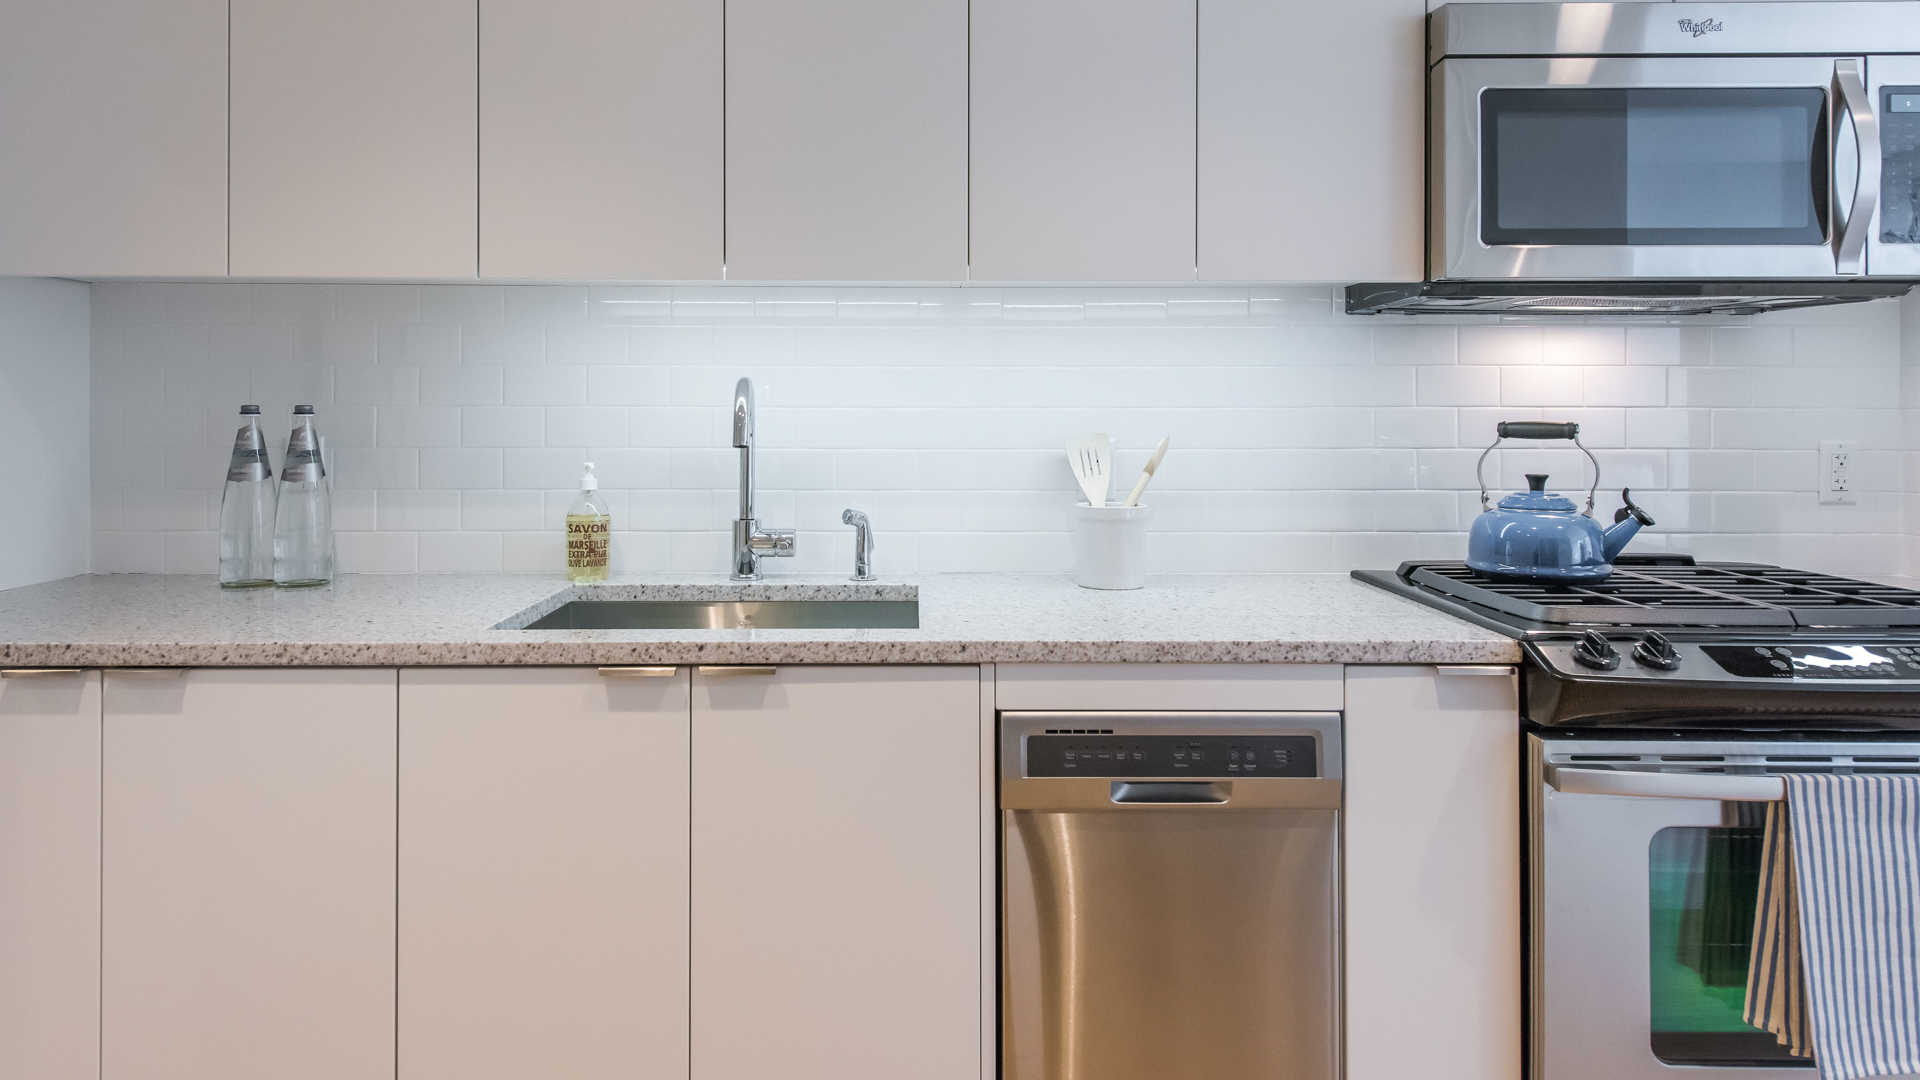 Kitchen with Stainless Appliances and Undermount Lighting